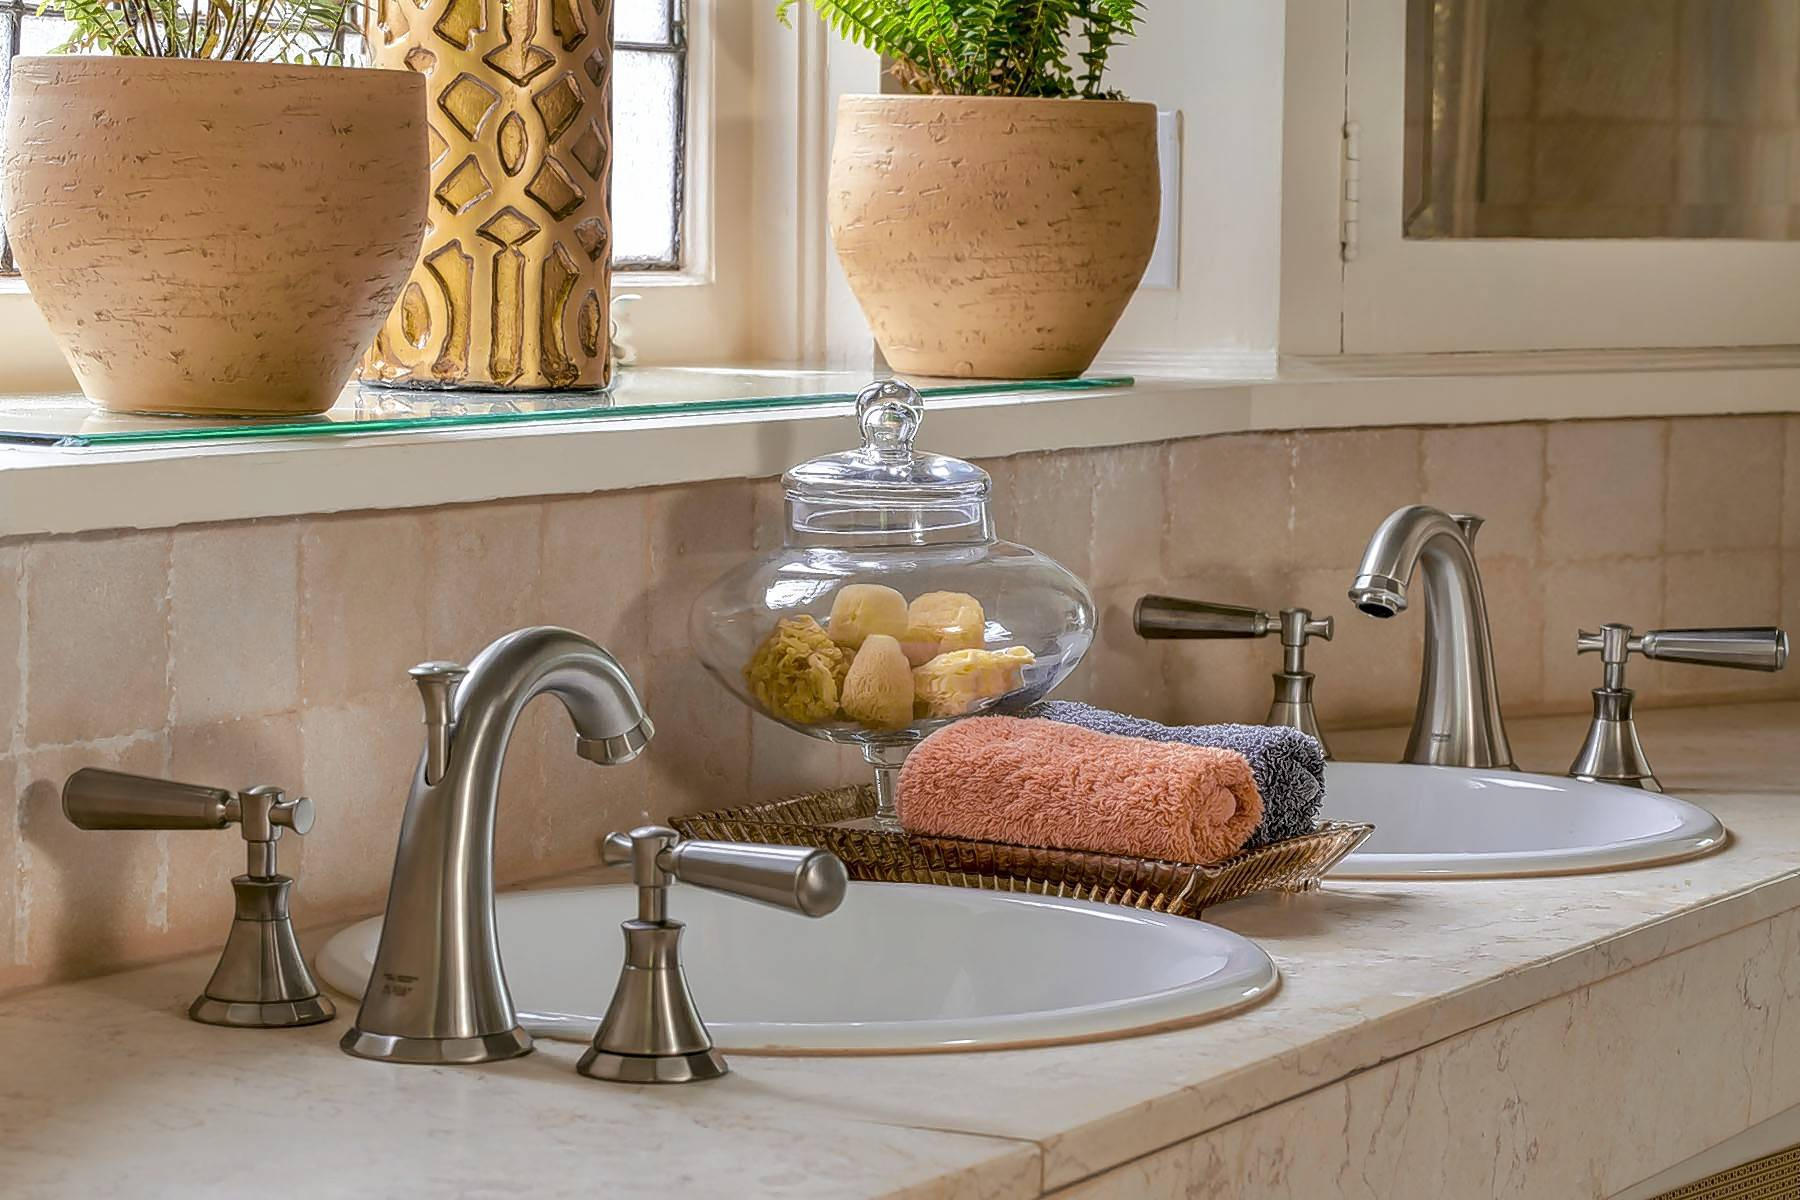 For the bathroom that is challenged by size, consider two facing sinks to save space.